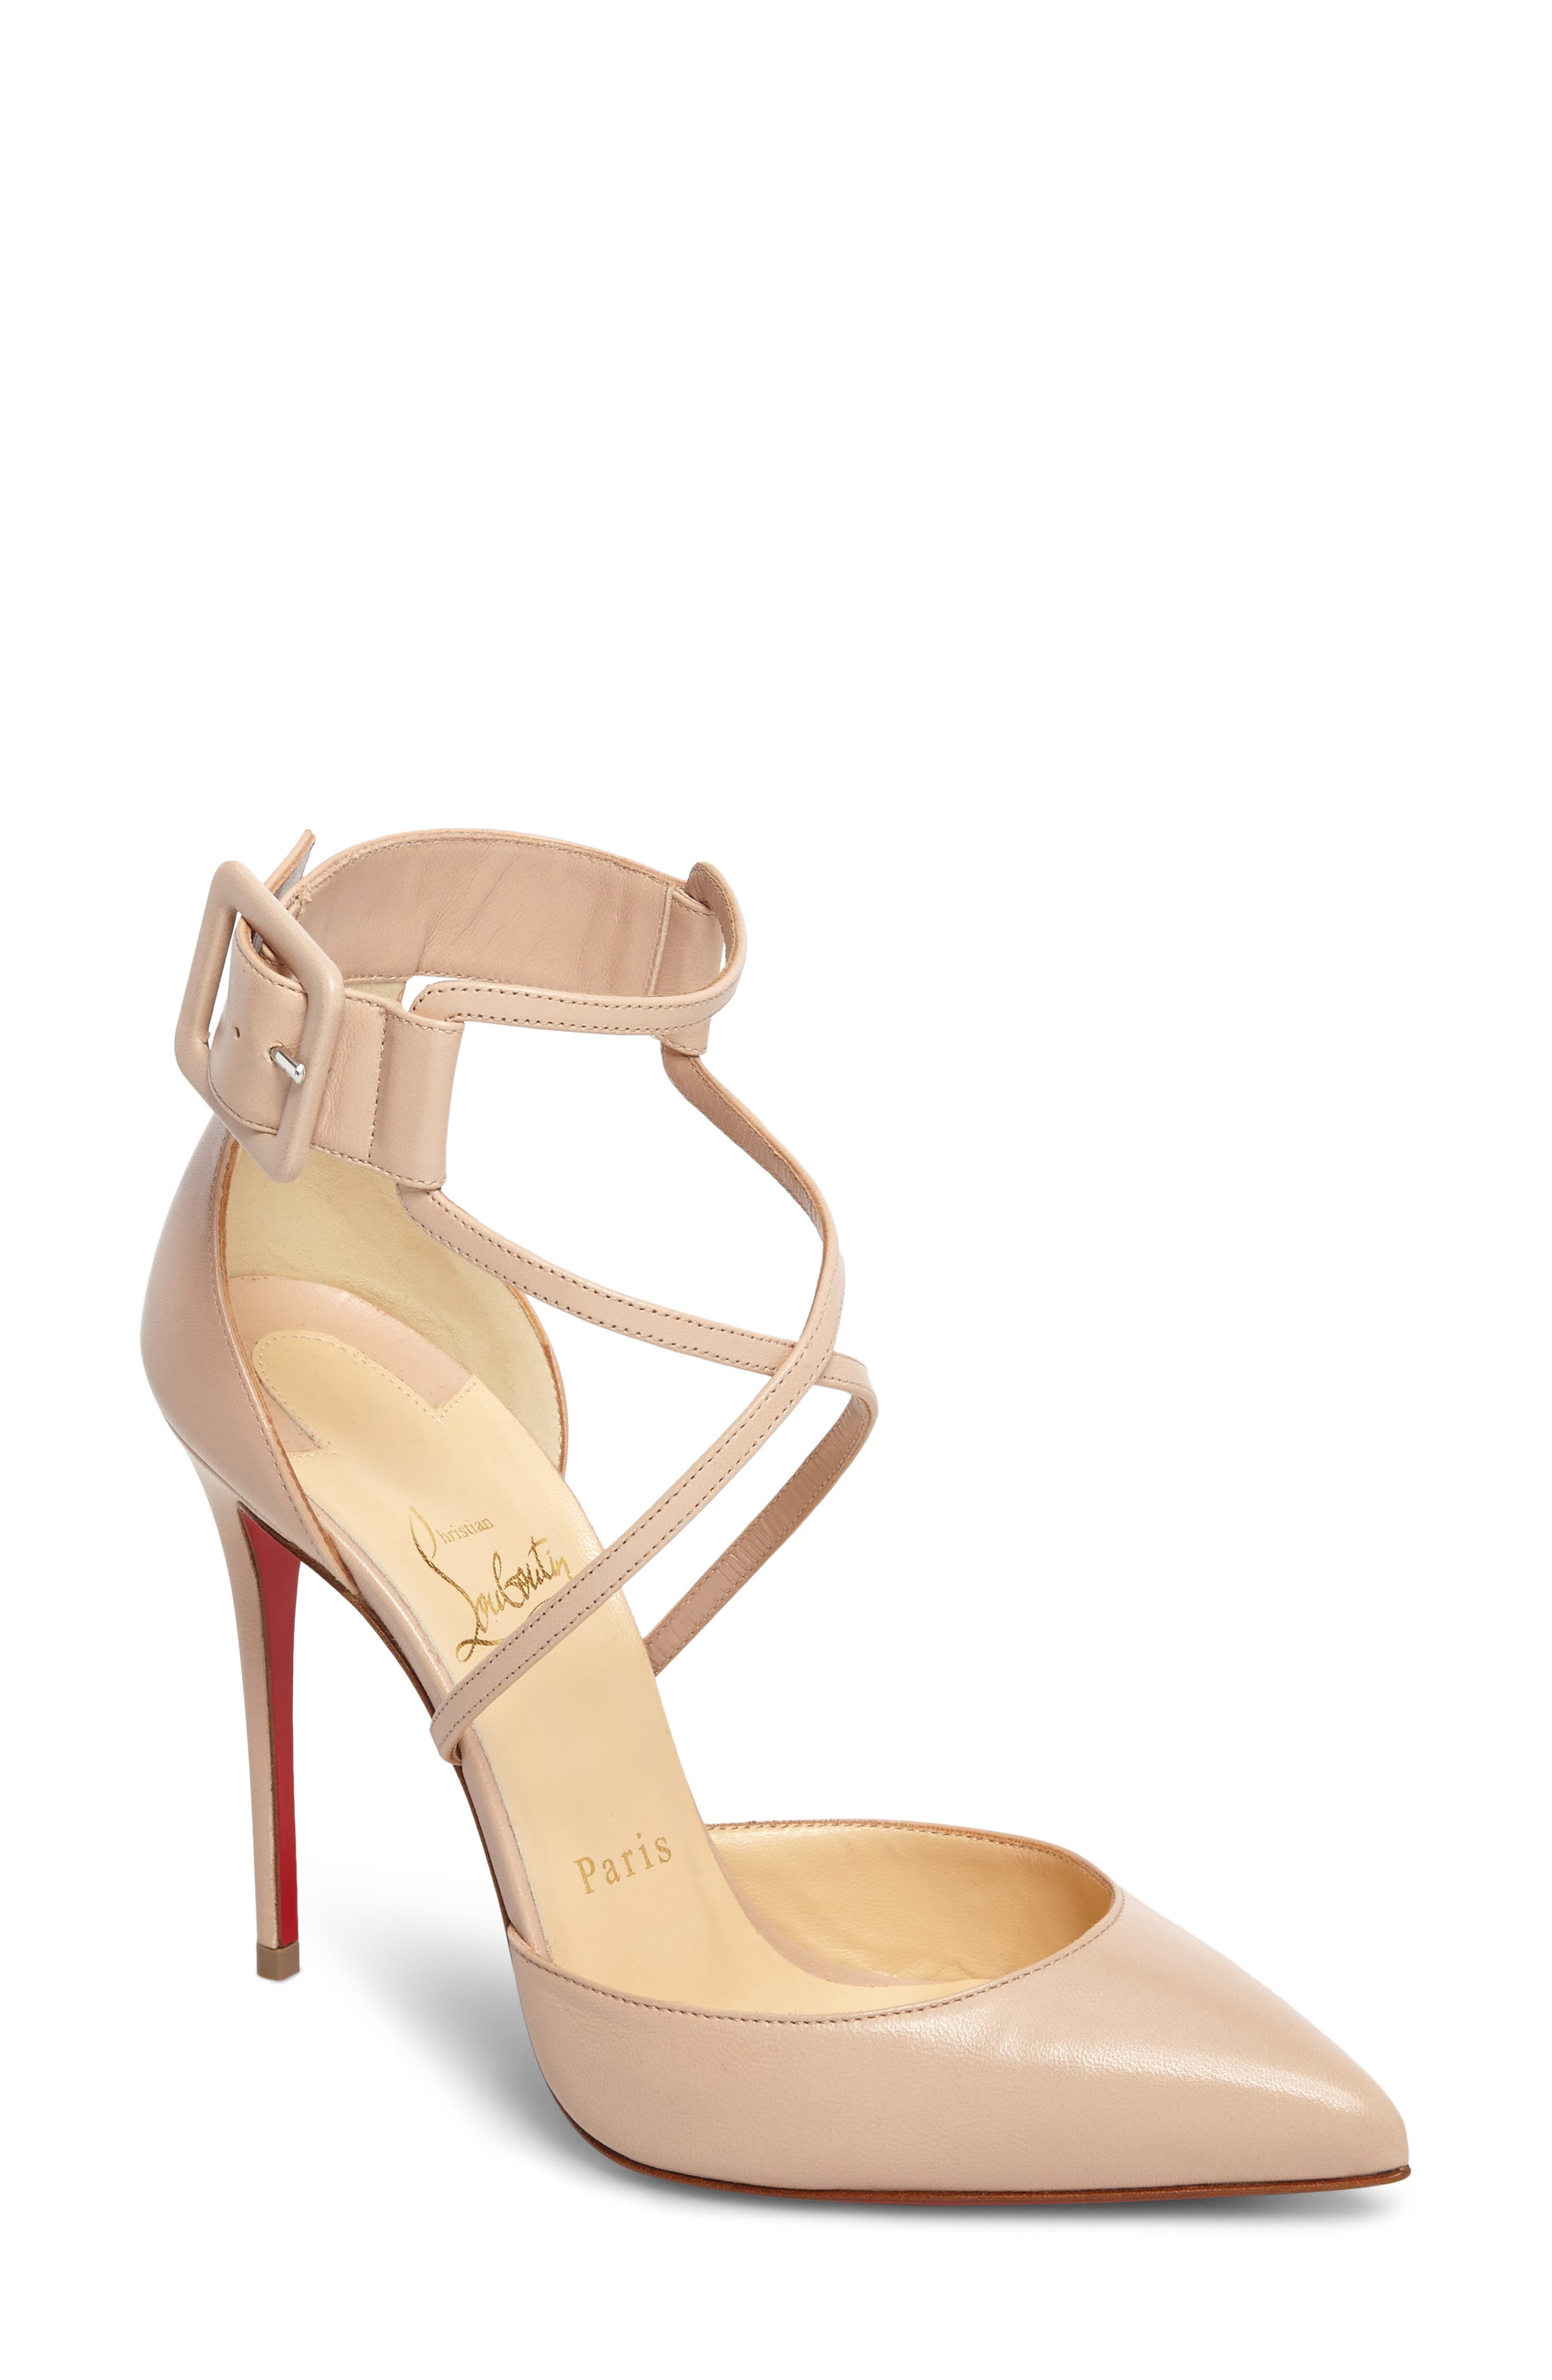 Alternate Image 1 Selected - Christian Louboutin 'Suzanna' Pointy Toe Pump